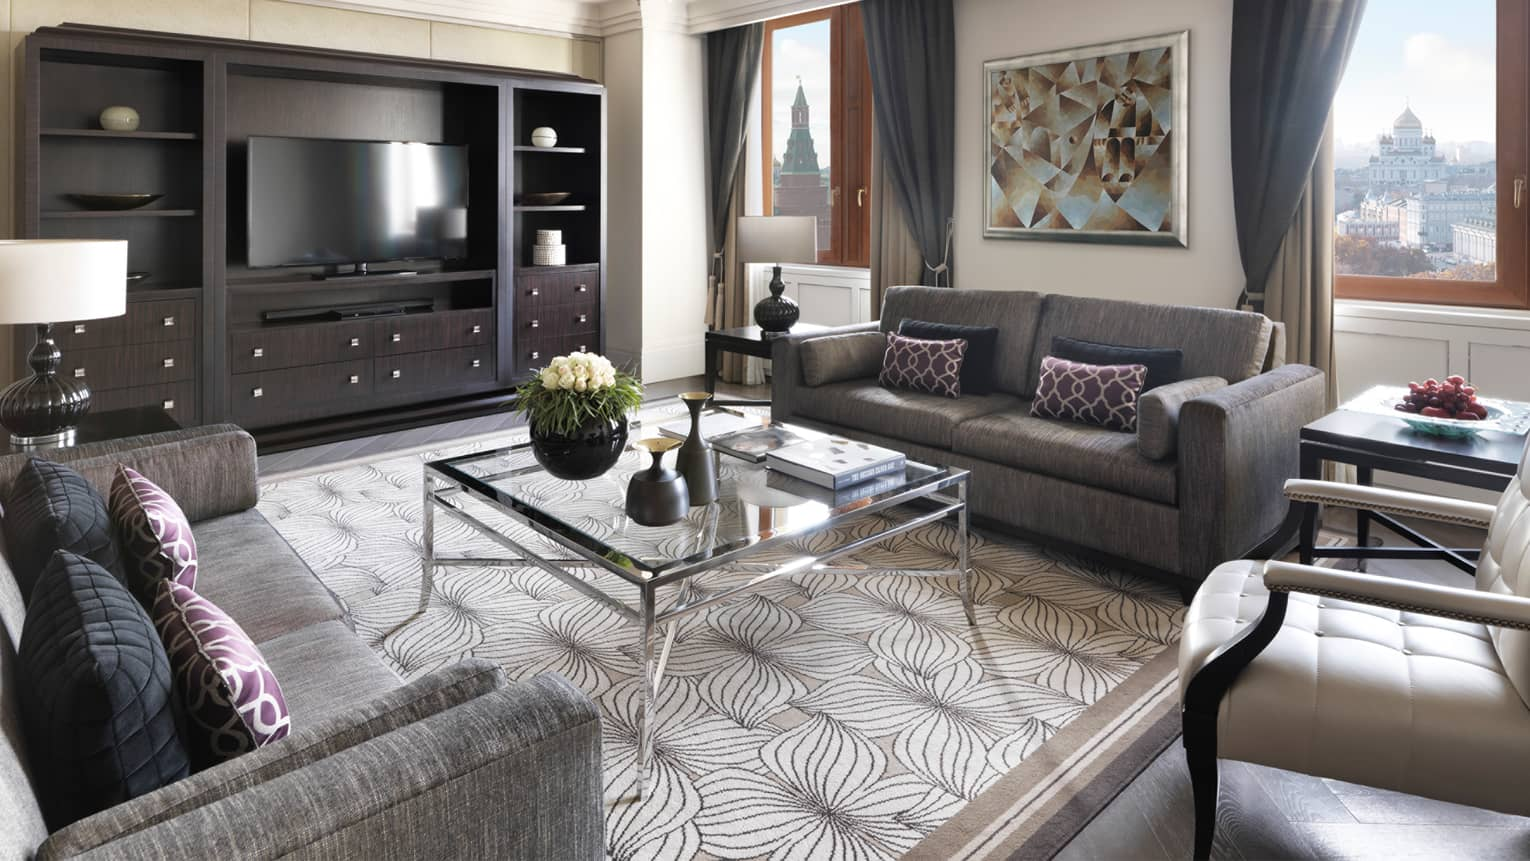 Hotel suite living room with grey sofas, glass coffee table, wall unit with flat-screen TV